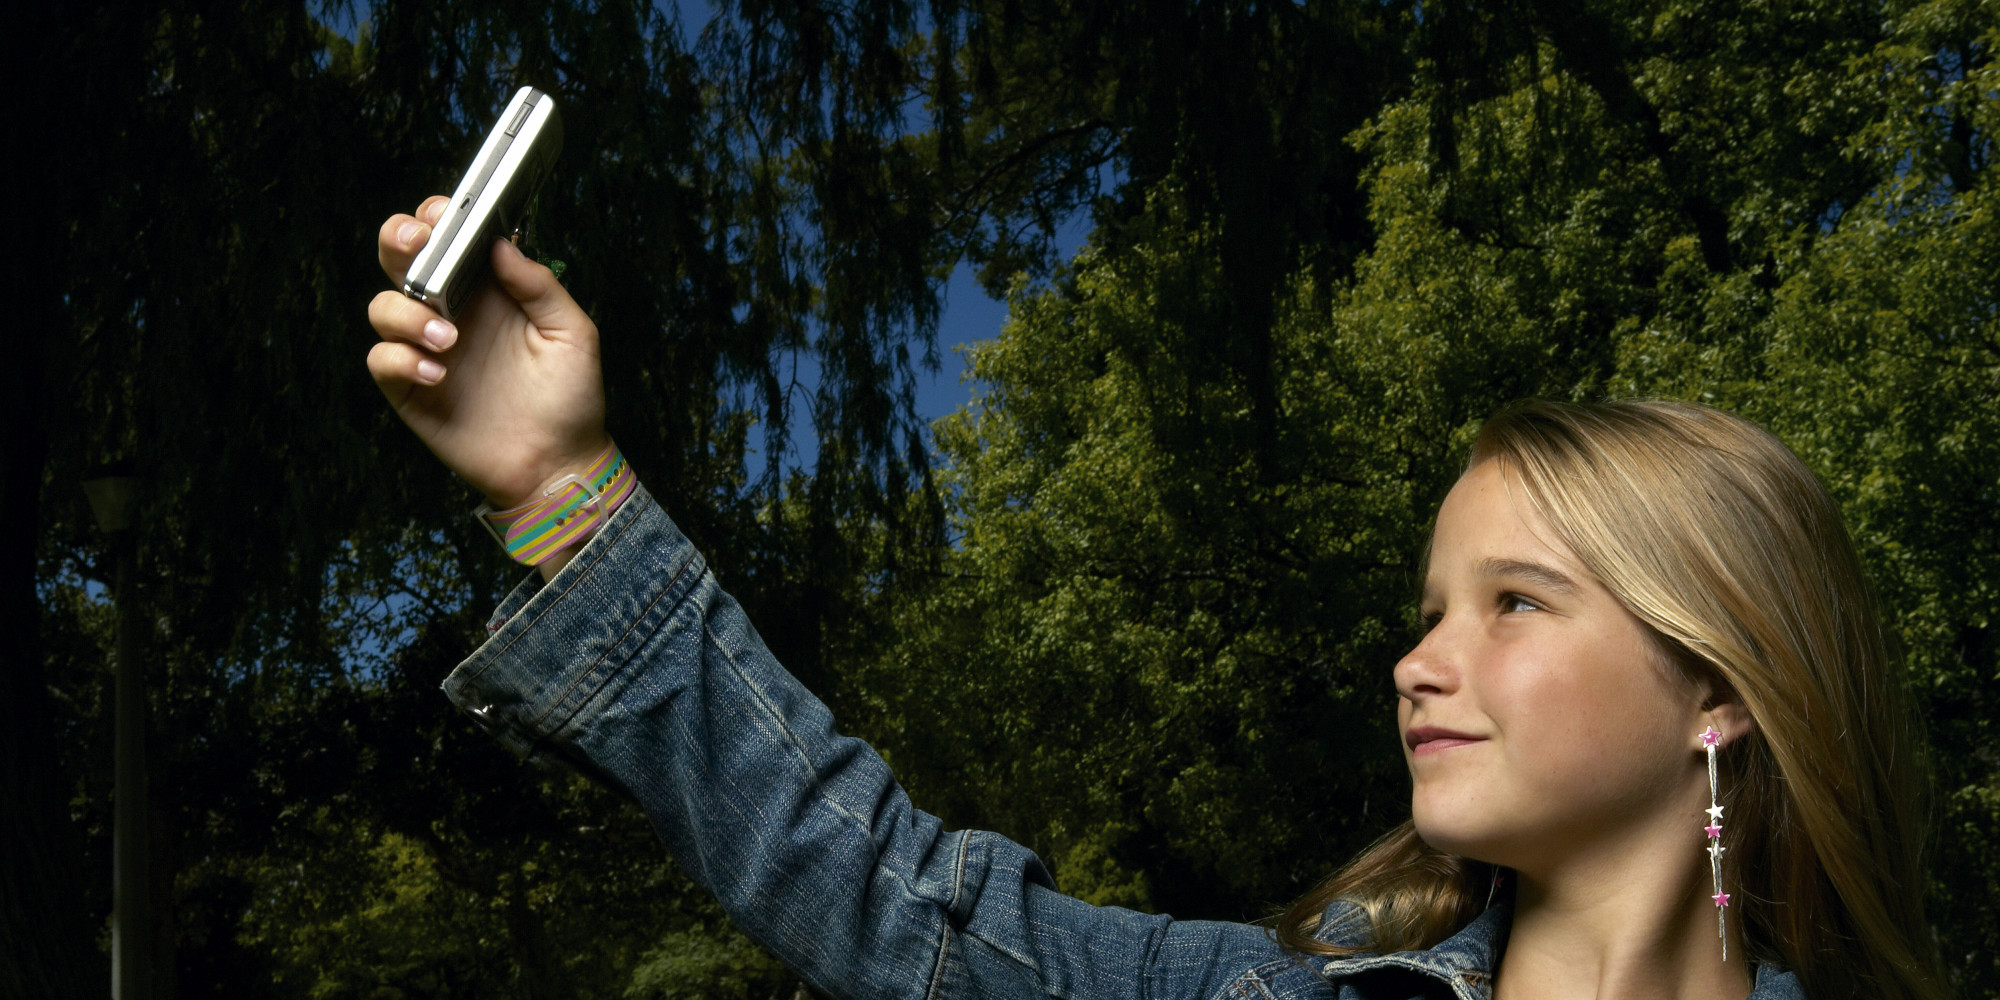 E-Venge: Selfies, Teens and Cyberbullying